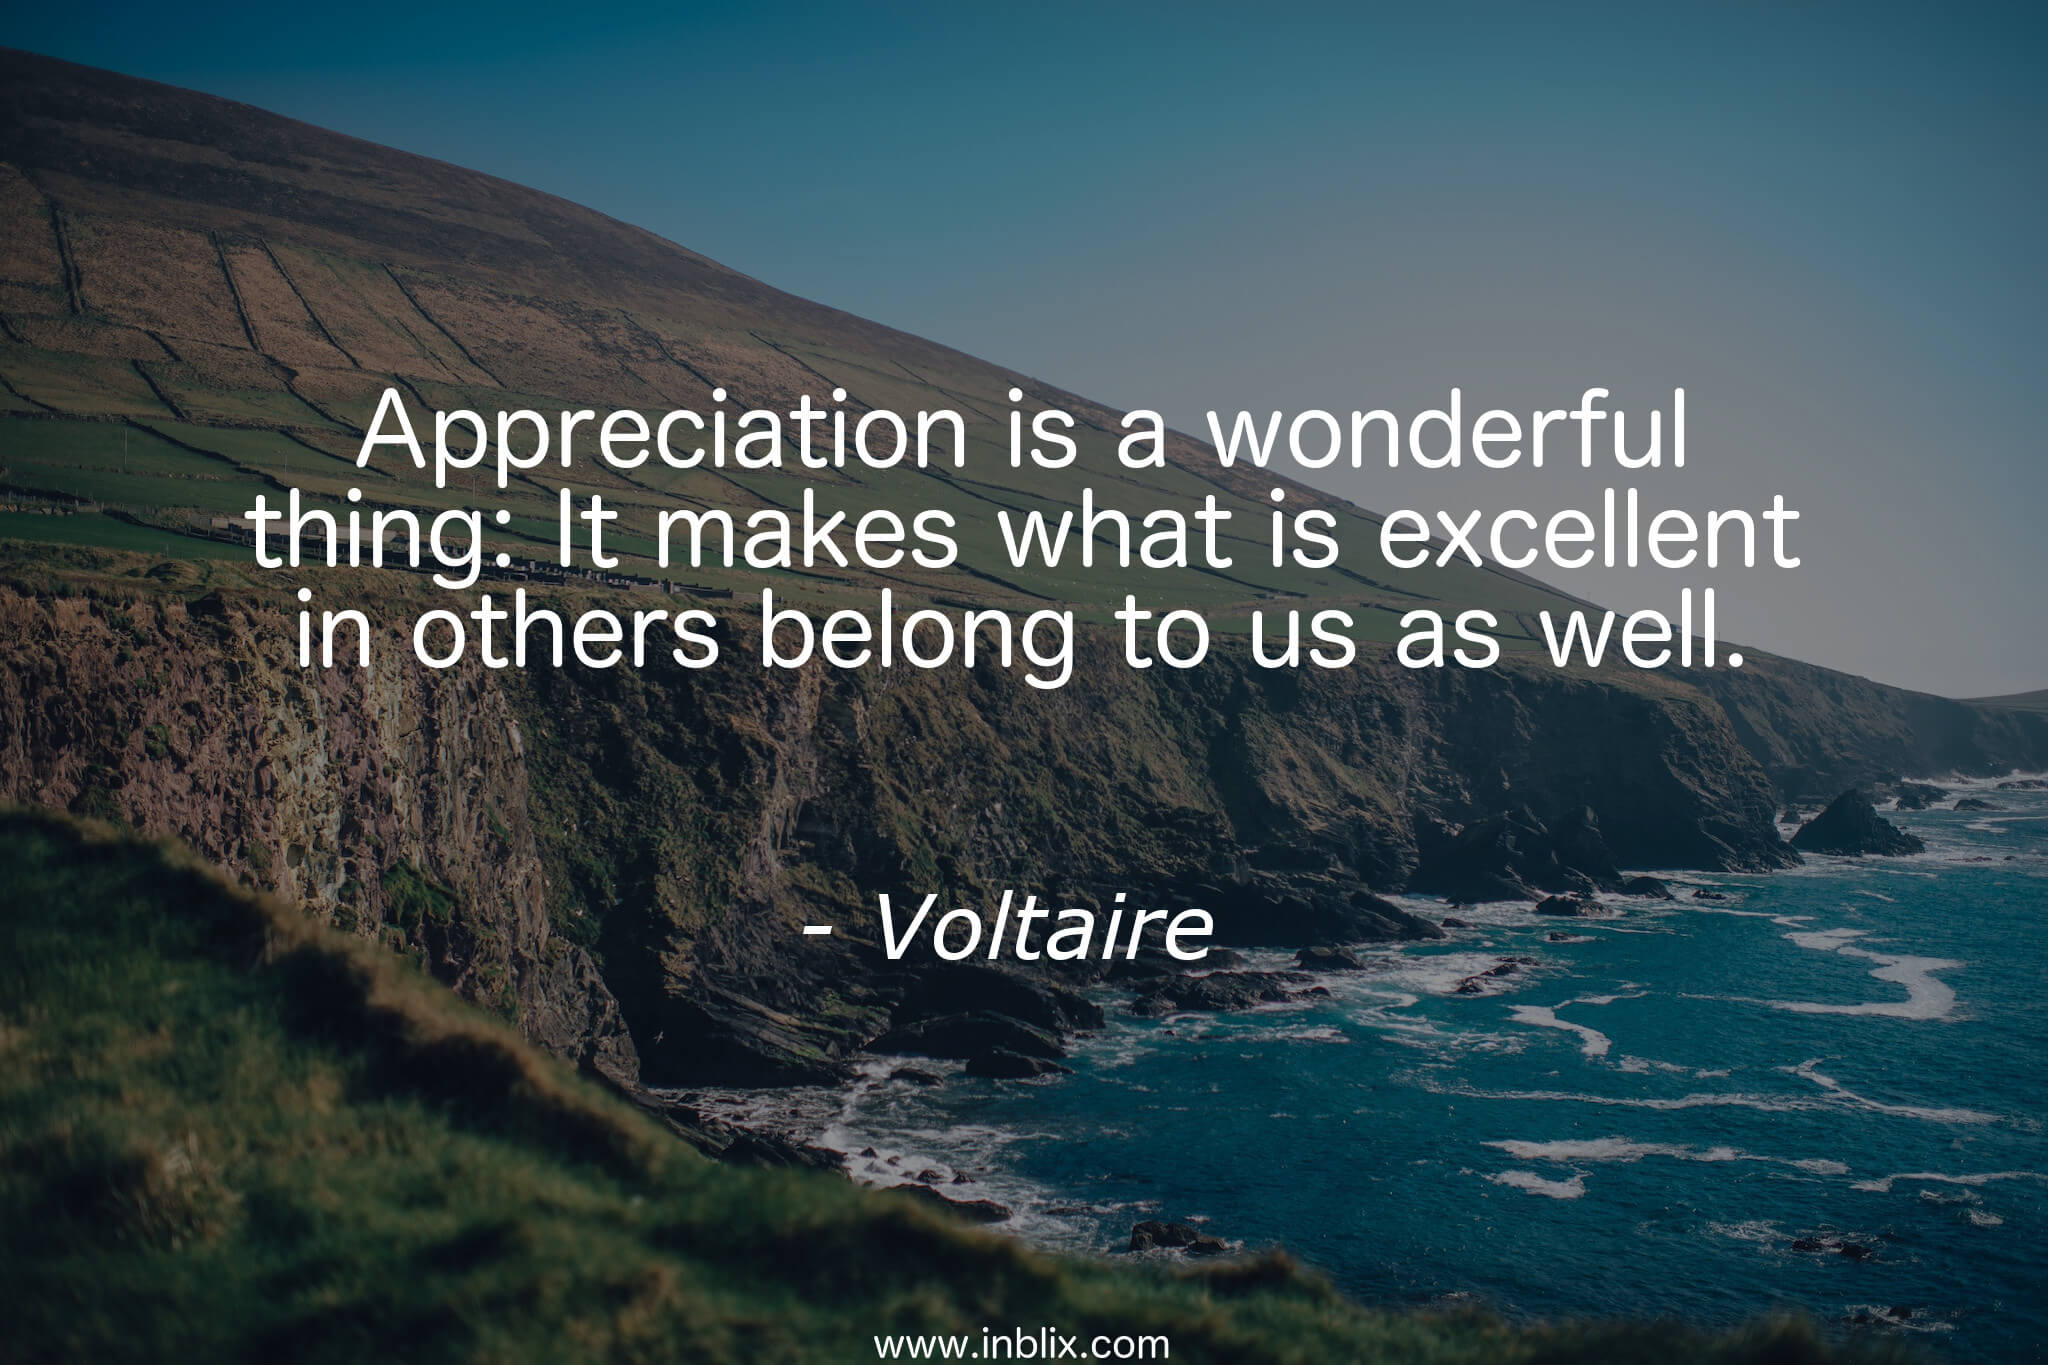 Quotes Voltaire Appreciation Is A Wonderful Thvoltaire  Inblix